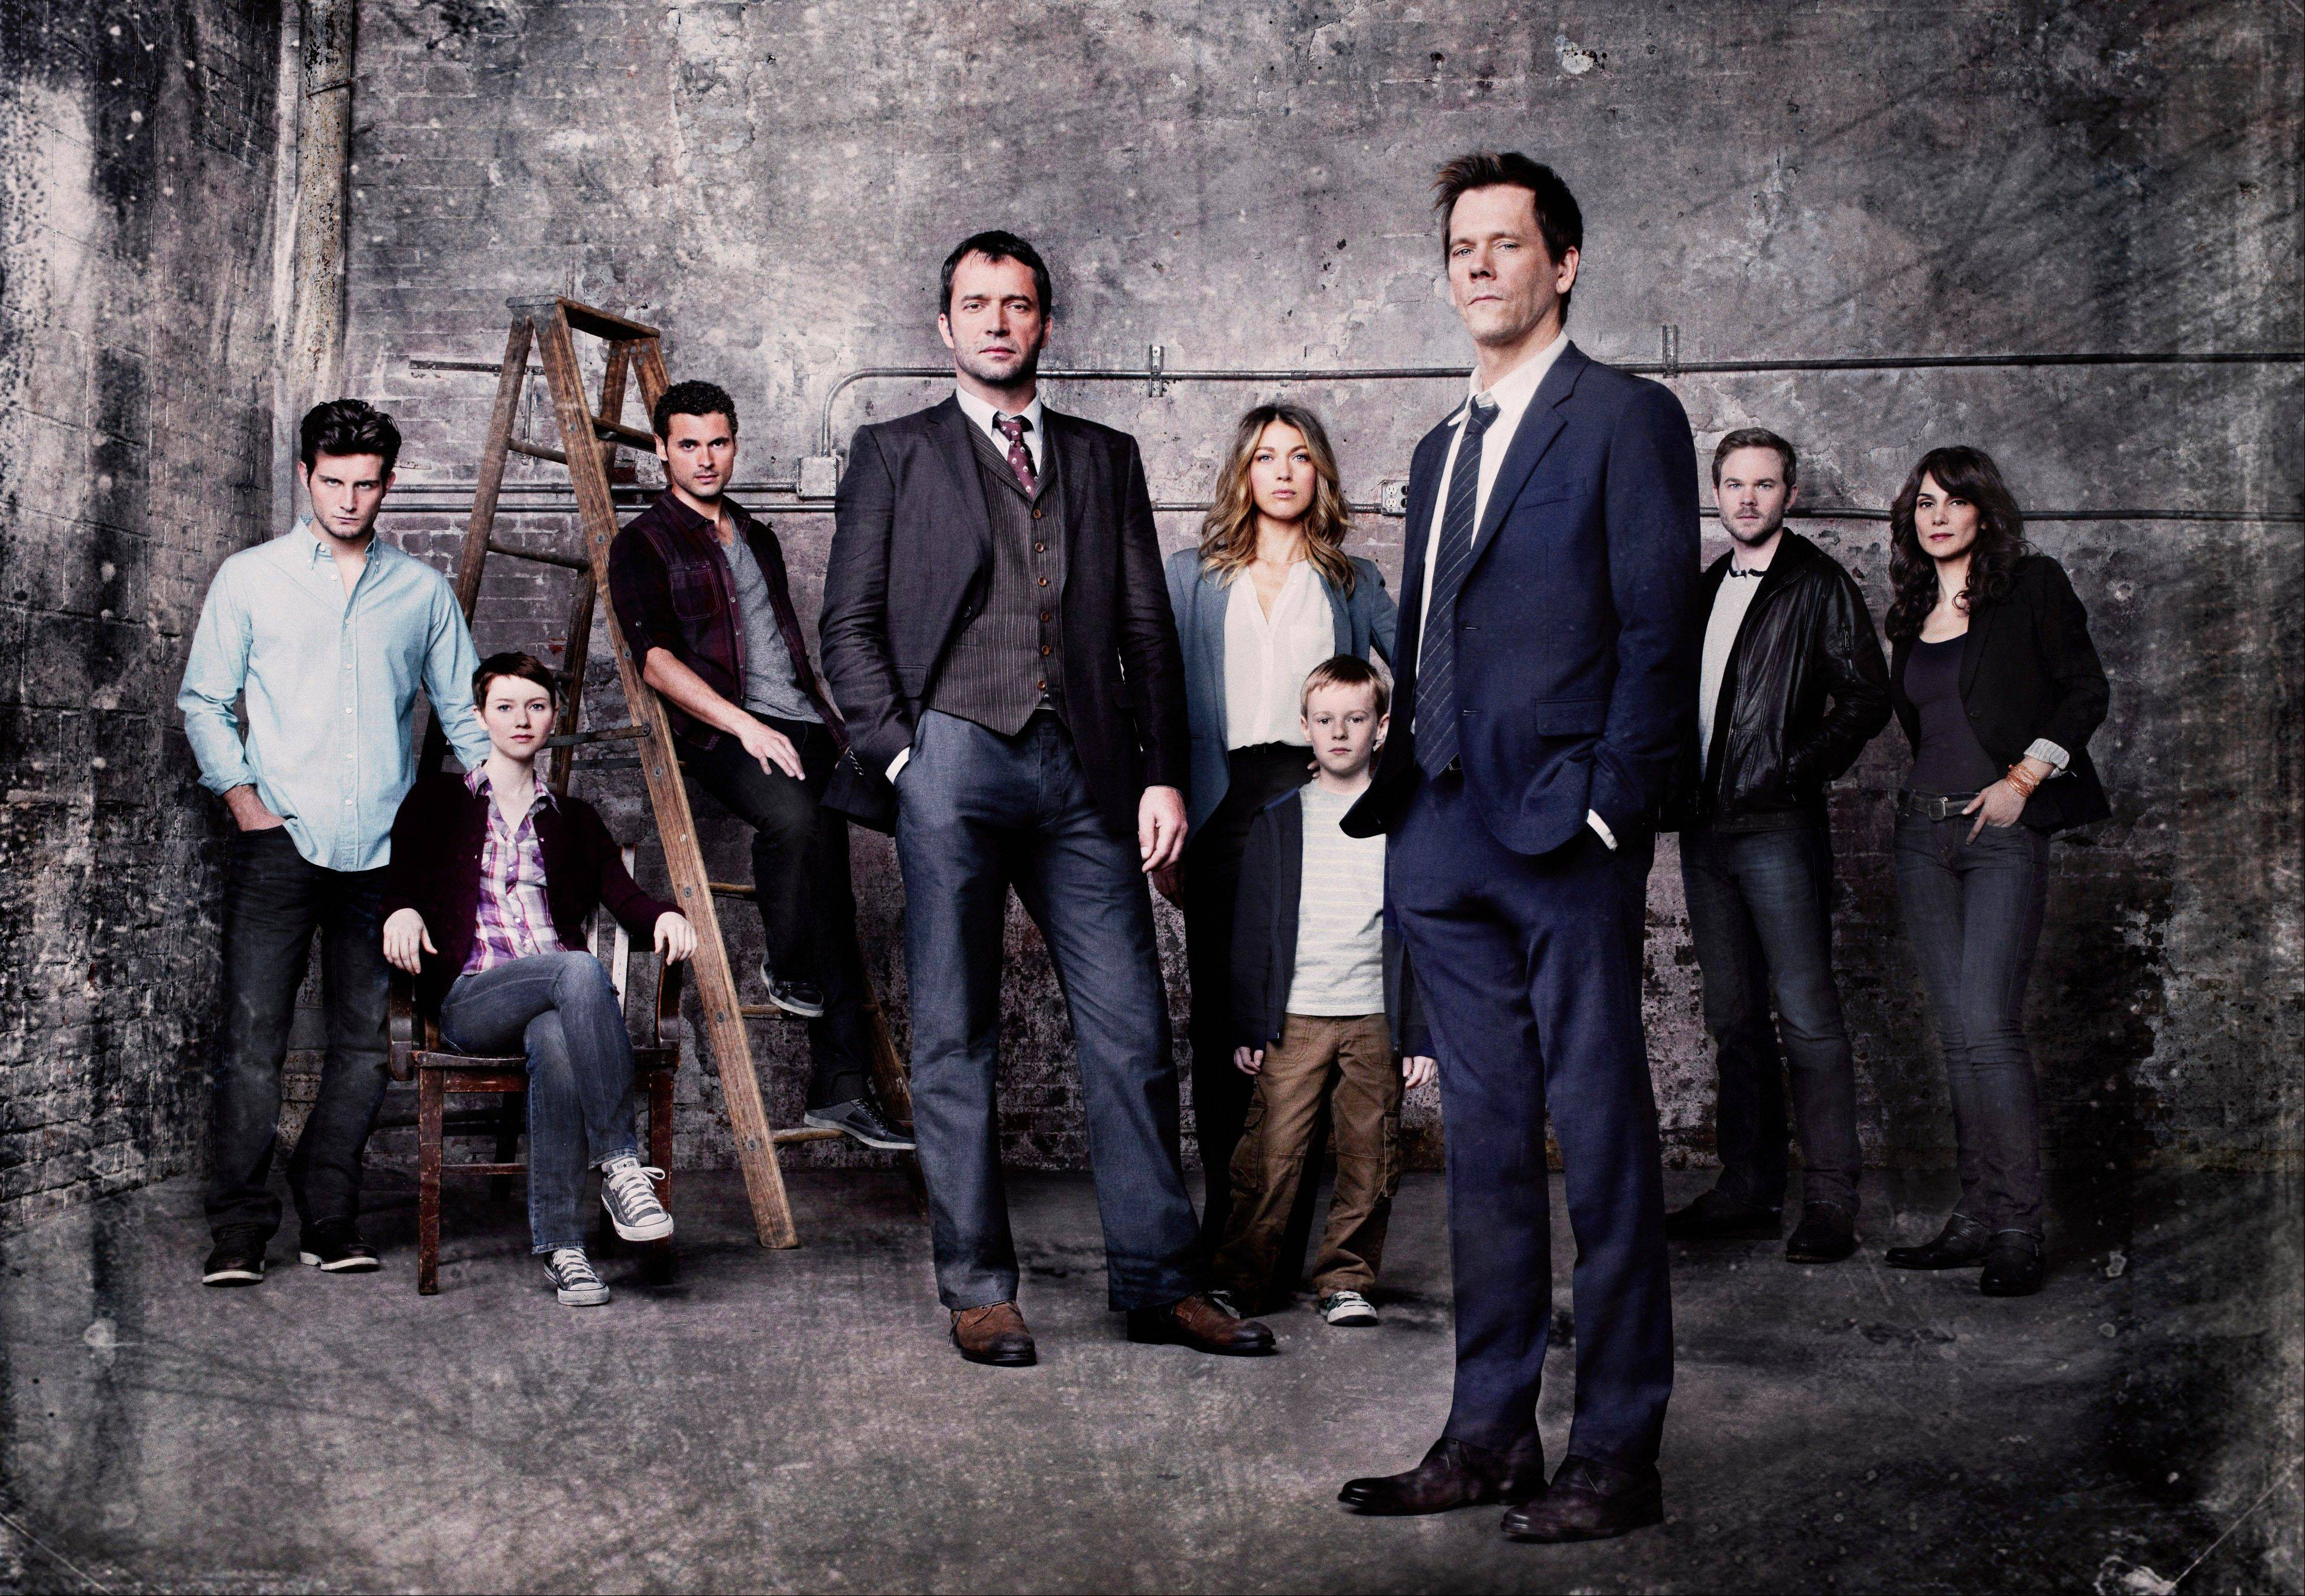 Kevin Bacon, front right, plays former FBI agent Ryan Hardy, who is called out of retirement to track down James Purefoy, fourth from left, as Joe Carroll, in the new psychological thriller �The Following� on Fox. The rest of the cast includes, from rear left, Nico Tortorella, Valorie Curry, Adan Canto, Natalie Zea, Kyle Catlett, Shawn Ashmore and Annie Parisse.